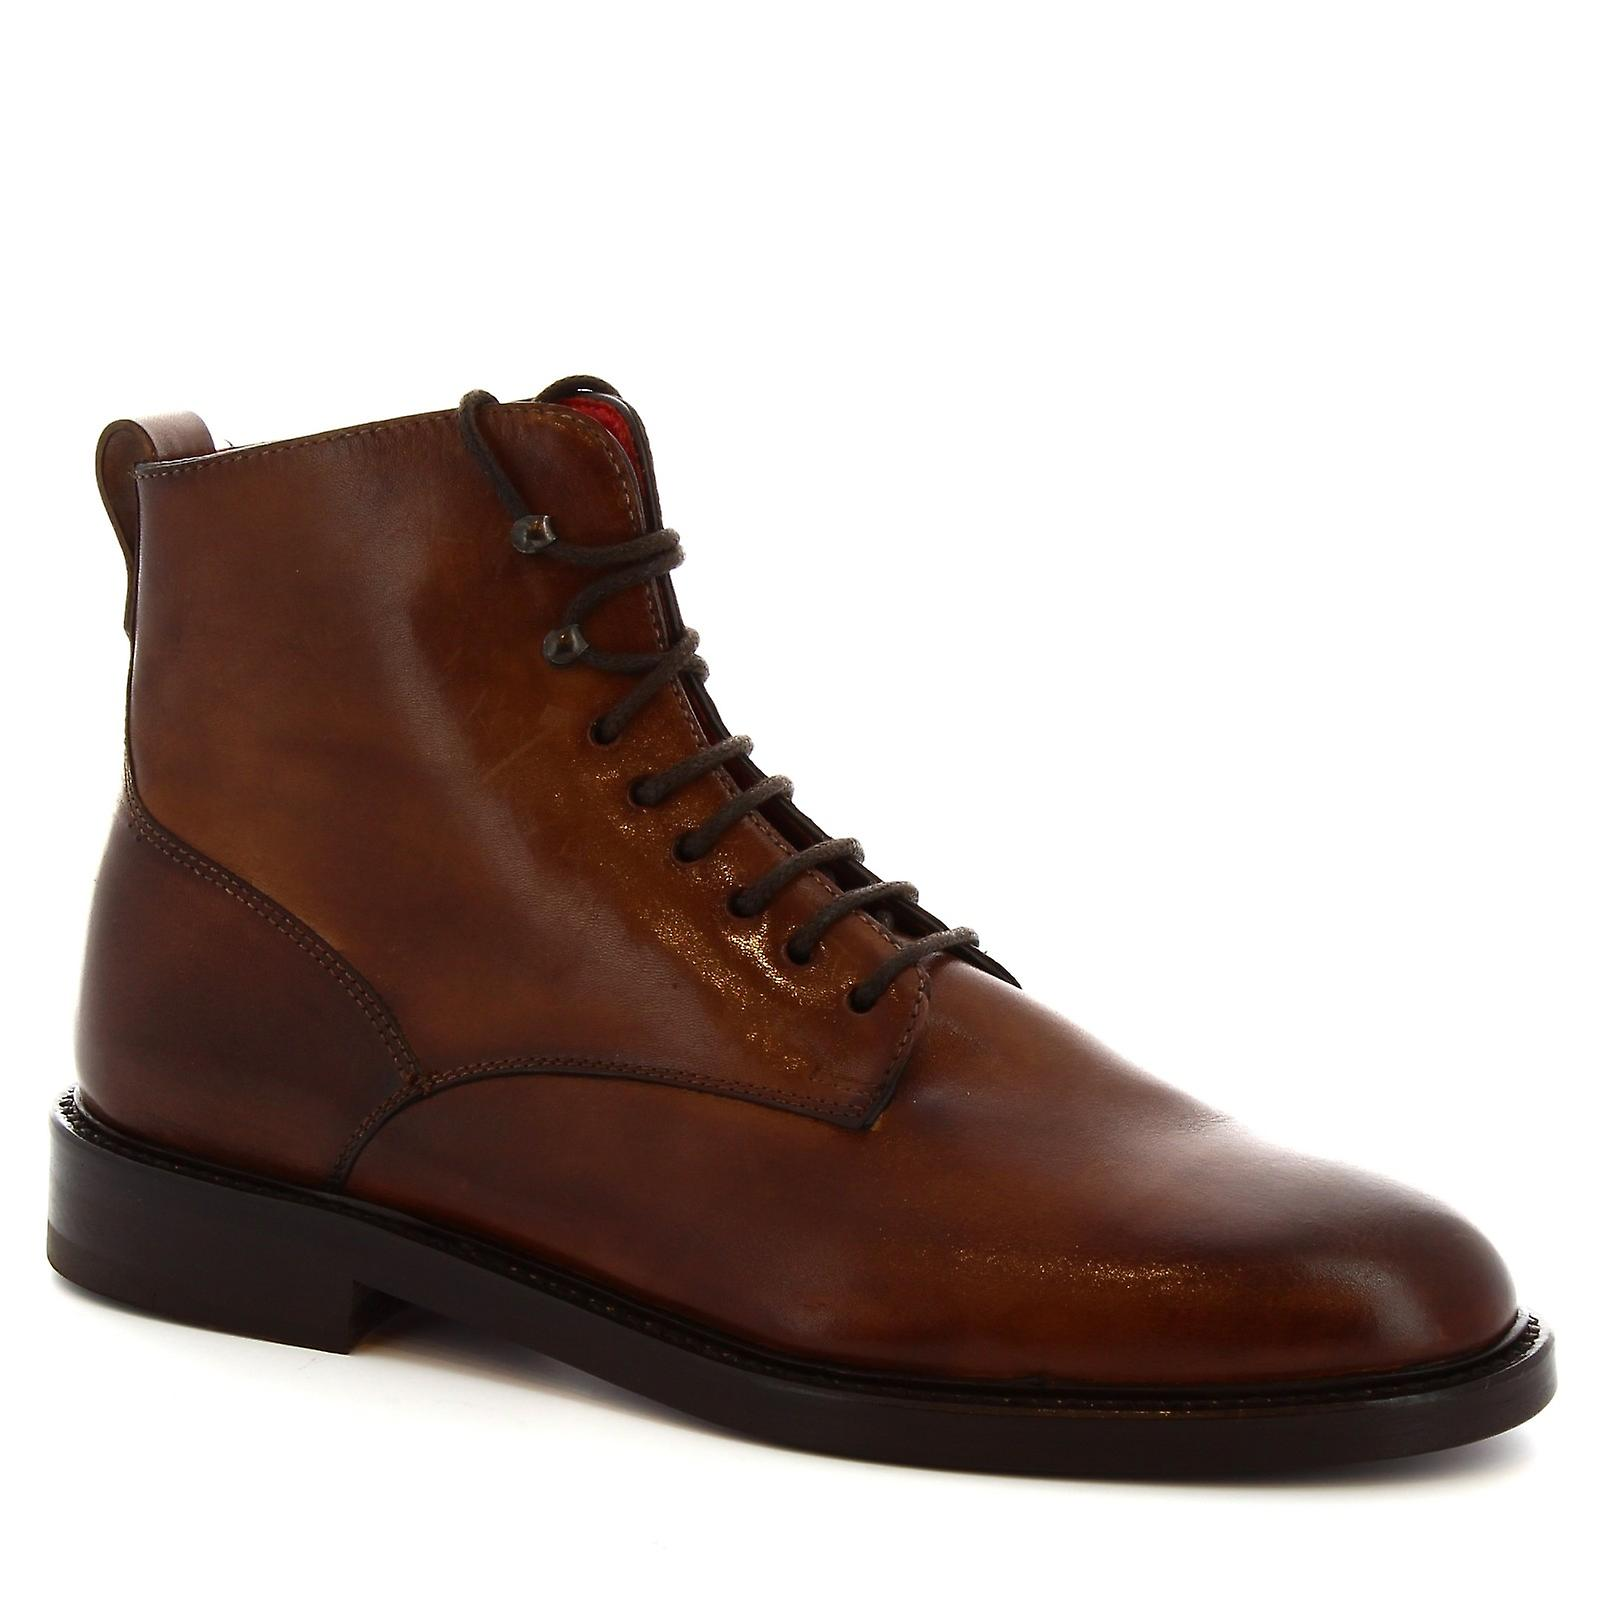 Leonardo Shoes Women's handmade laced up boots in brandy calf leather sGice